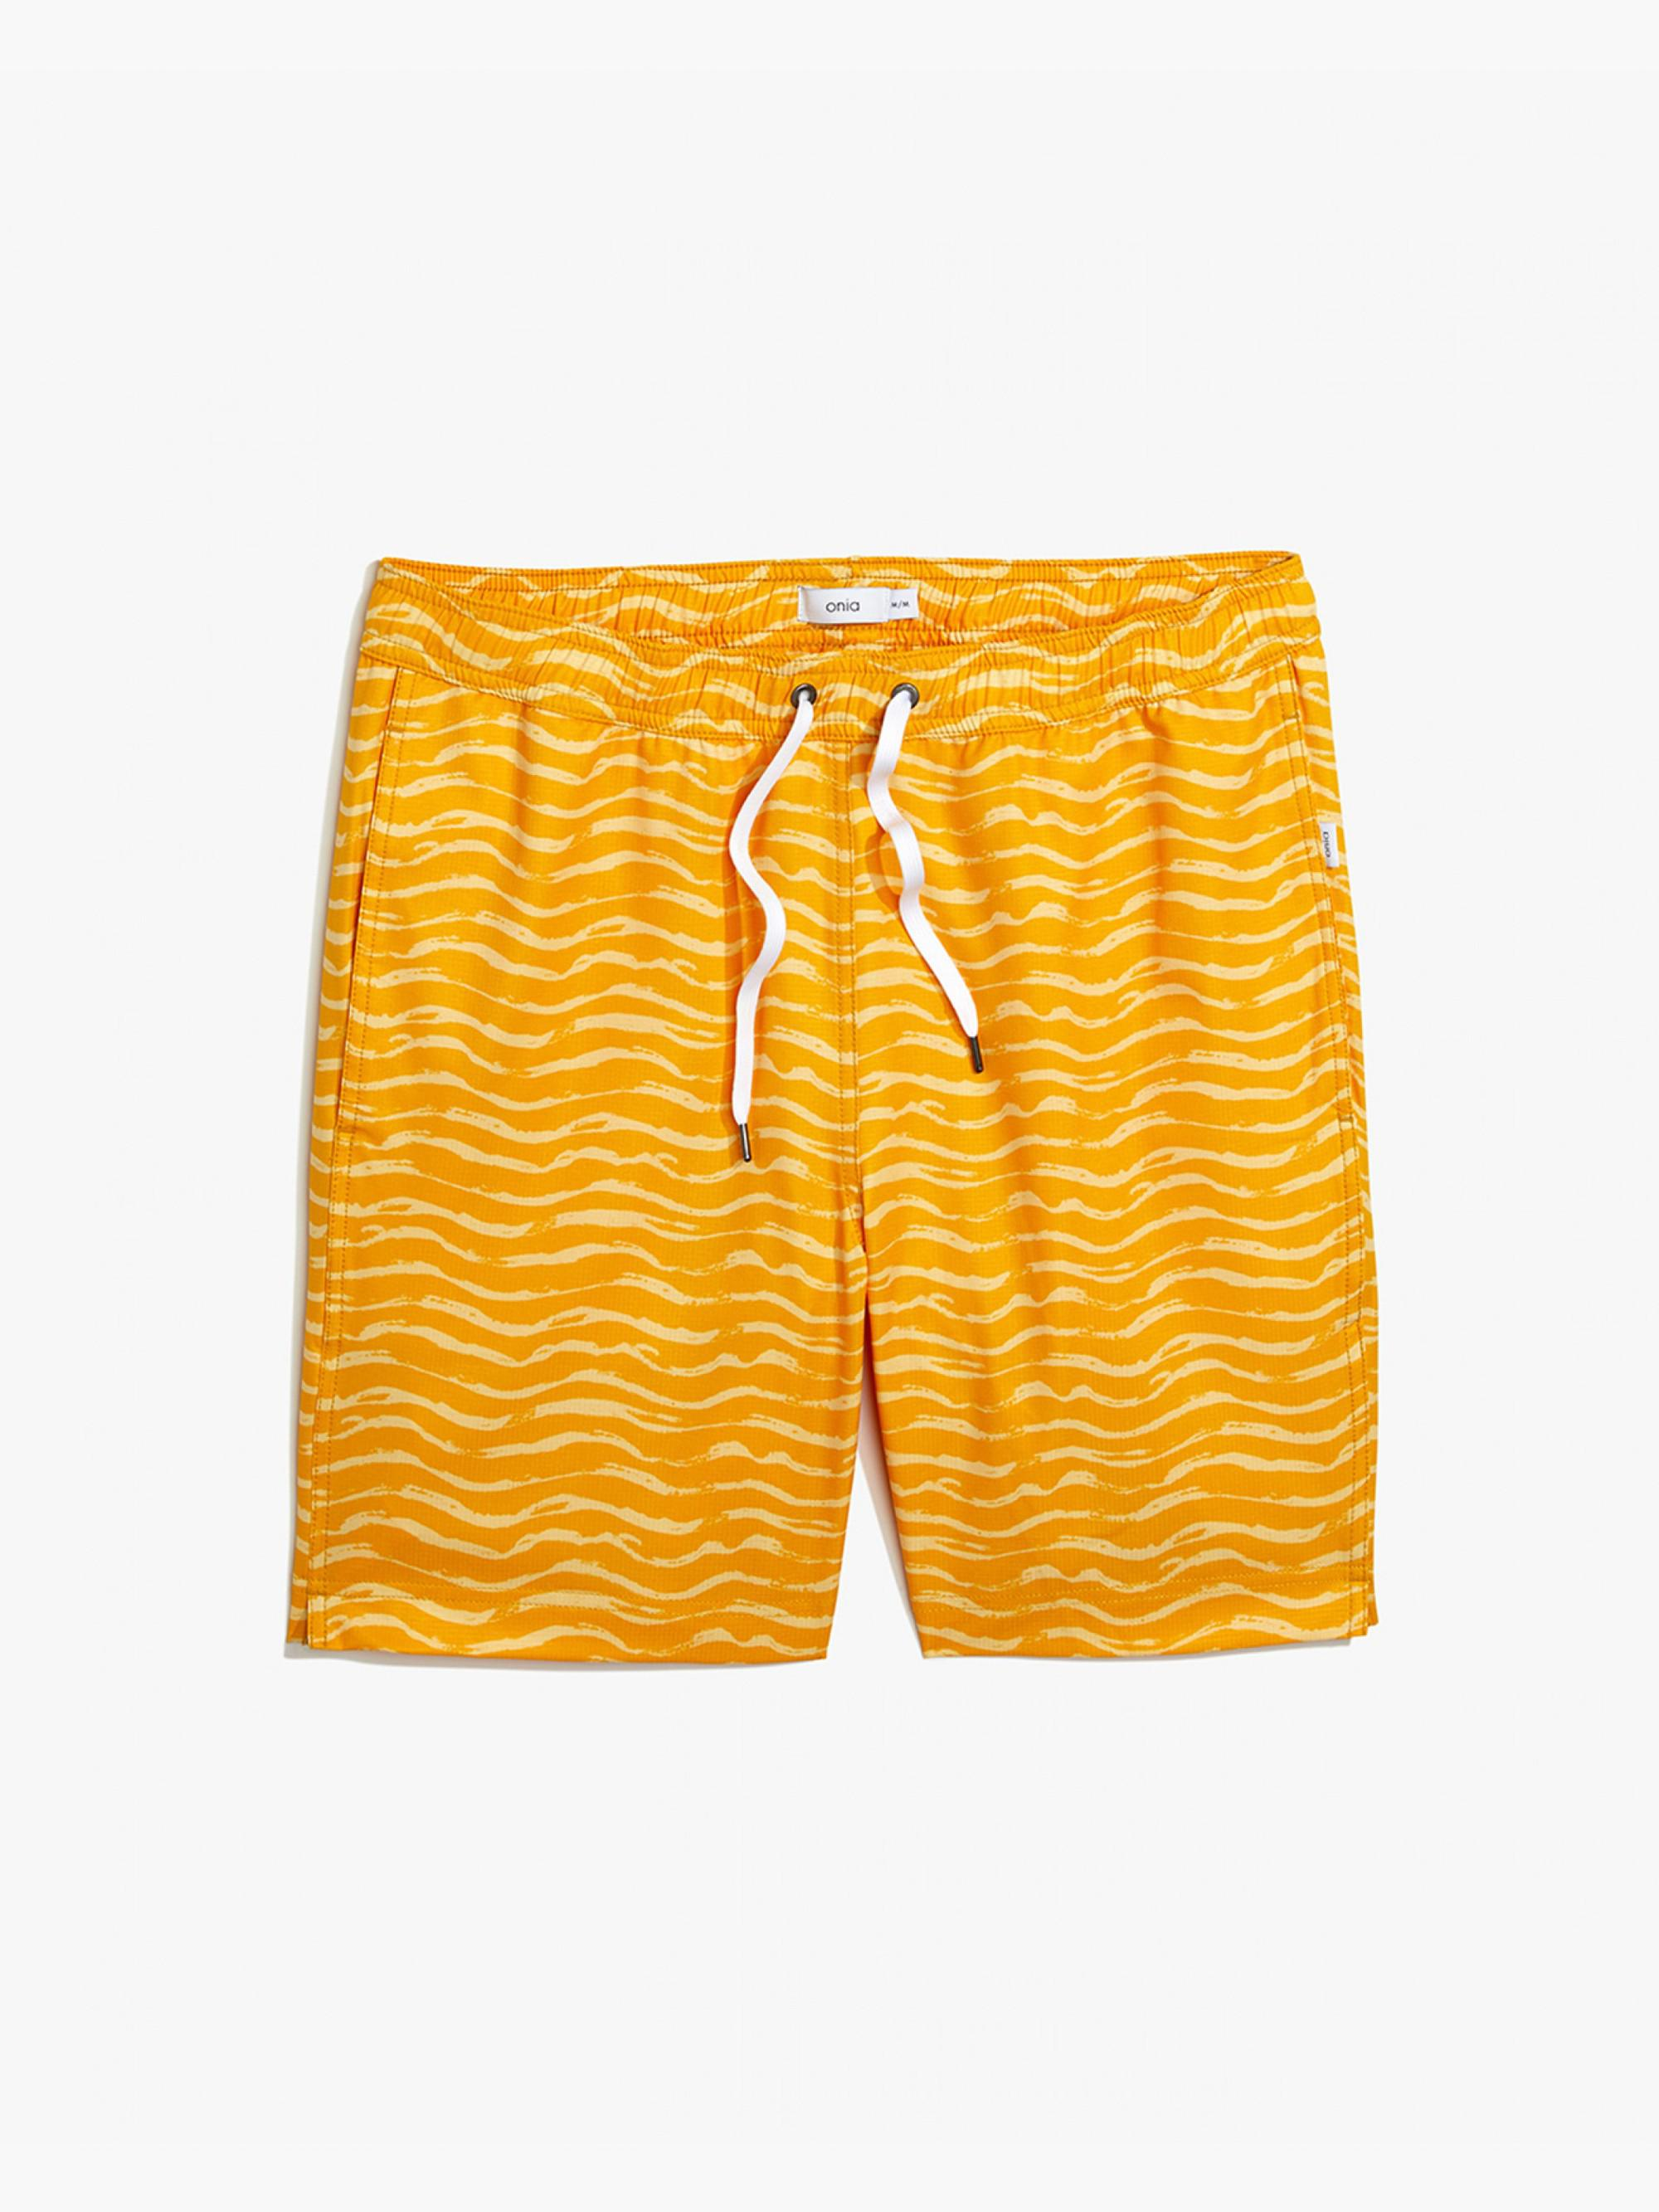 Charles 7 swim trunks - Yellow & Orange Onia Buy Cheap Low Price High Quality Cheap Price Sneakernews Ebay Sale Online Buy Cheap Visit WwqYVGDfc